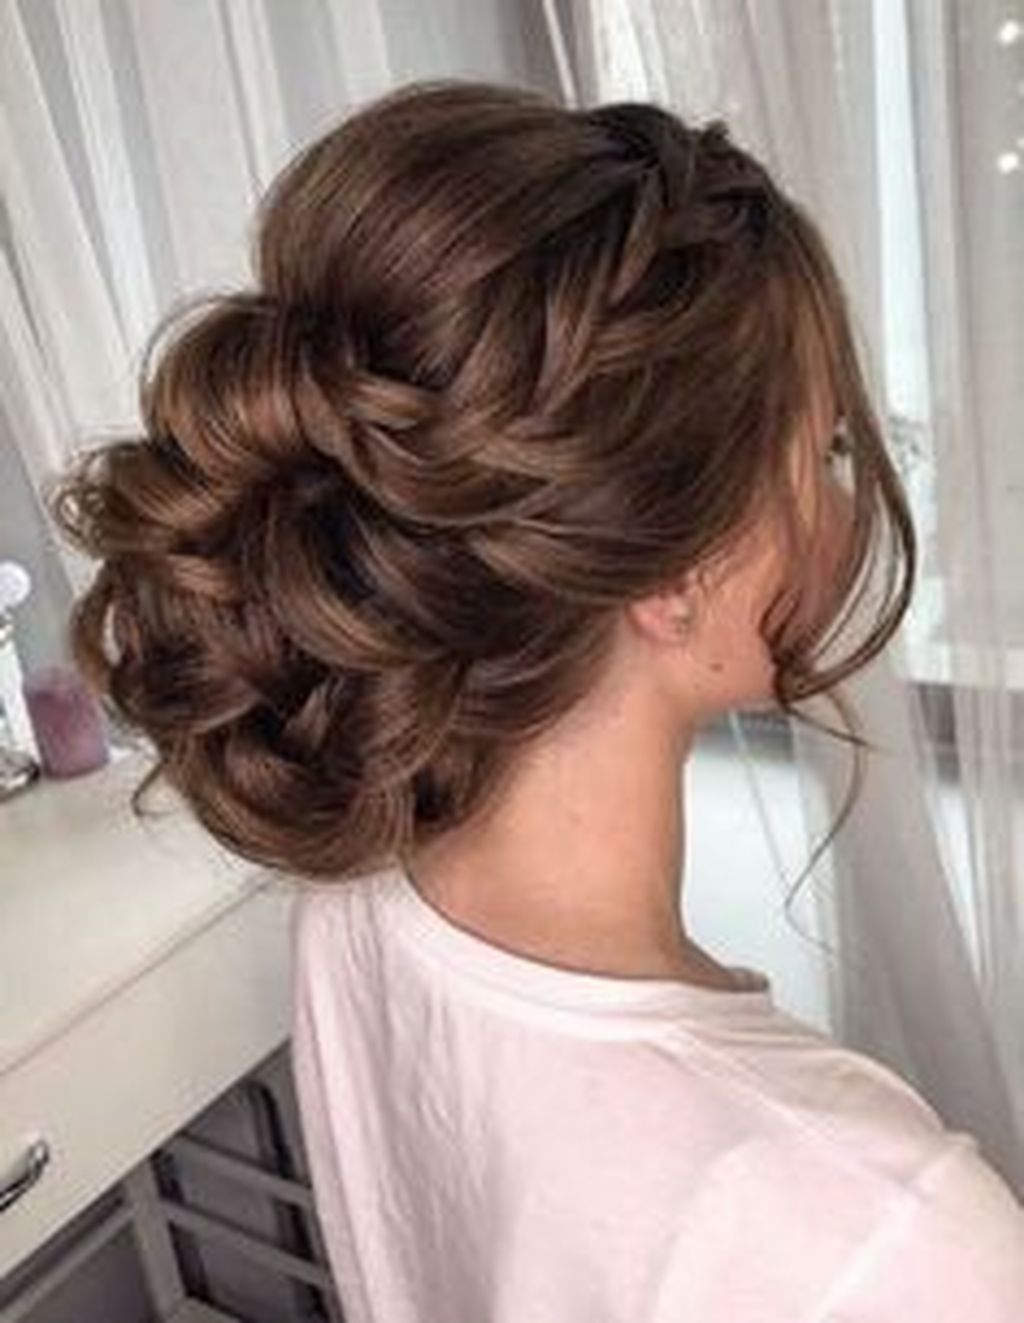 47 Classy Wedding Hairstyles Ideas - ADDICFASHION